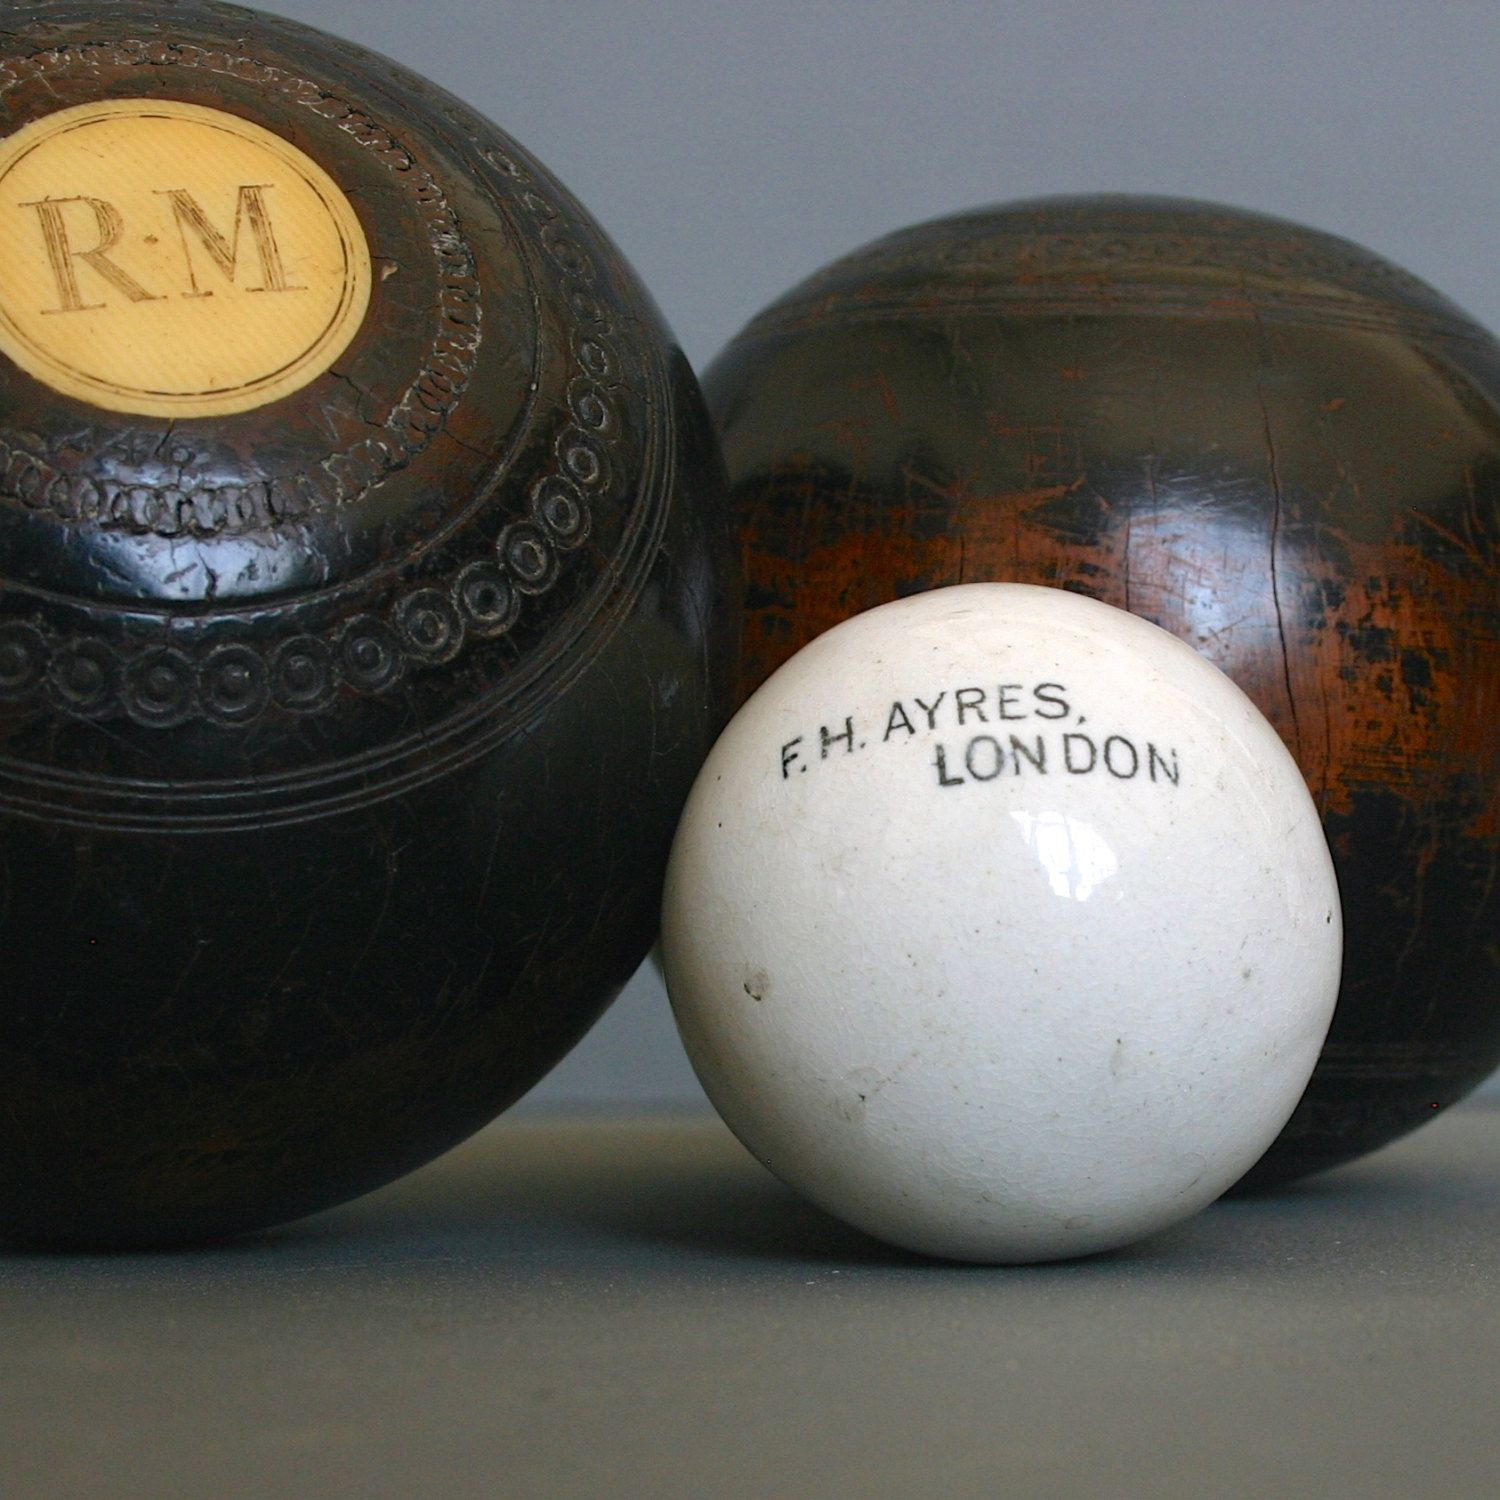 1 antique lawn bowls jack from england vintage bowling jack 1 antique lawn bowls jack from england vintage bowling jack f h ayres lawn bowl geenschuldenfo Choice Image